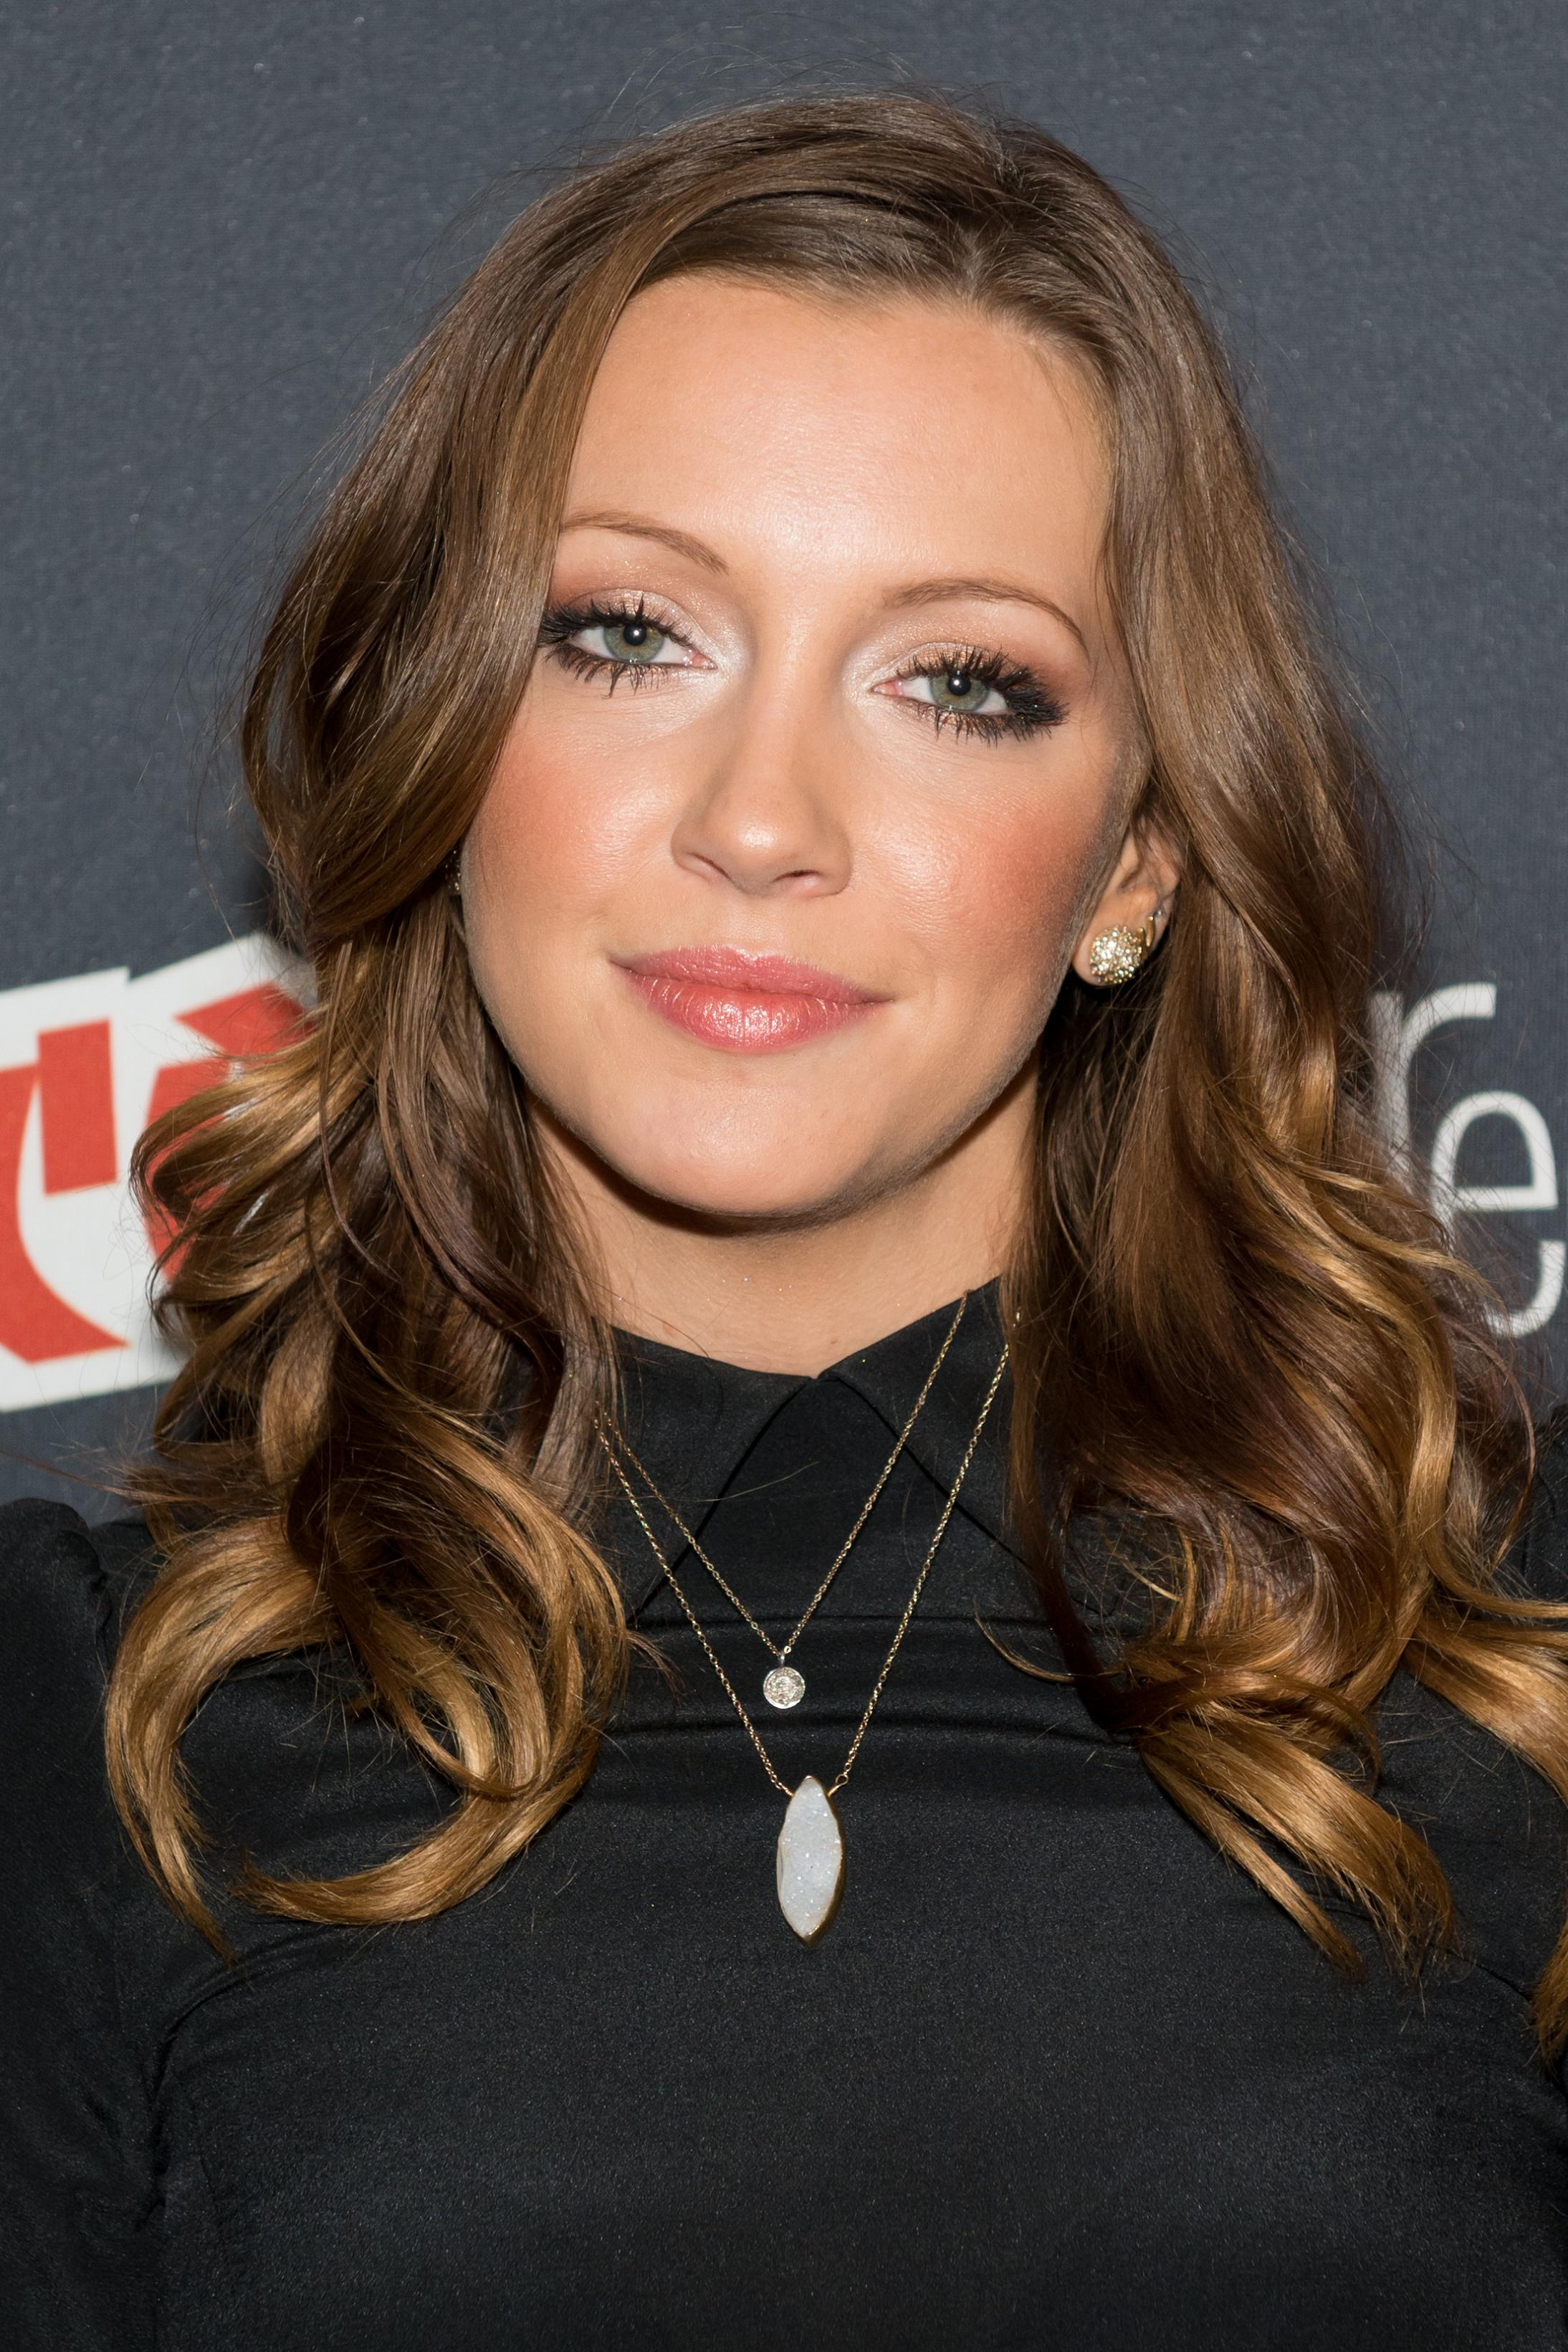 katie cassidy iconskatie cassidy arrow, katie cassidy gif, katie cassidy фото, katie cassidy кинопоиск, katie cassidy site, katie cassidy 2017, katie cassidy icons, katie cassidy and willa holland, katie cassidy wallpaper, katie cassidy trump, katie cassidy 2016, katie cassidy screencaps, katie cassidy wiki, katie cassidy flash, katie cassidy imdb, katie cassidy smile, katie cassidy instagram, katie cassidy daily, katie cassidy and caity lotz, katie cassidy insta